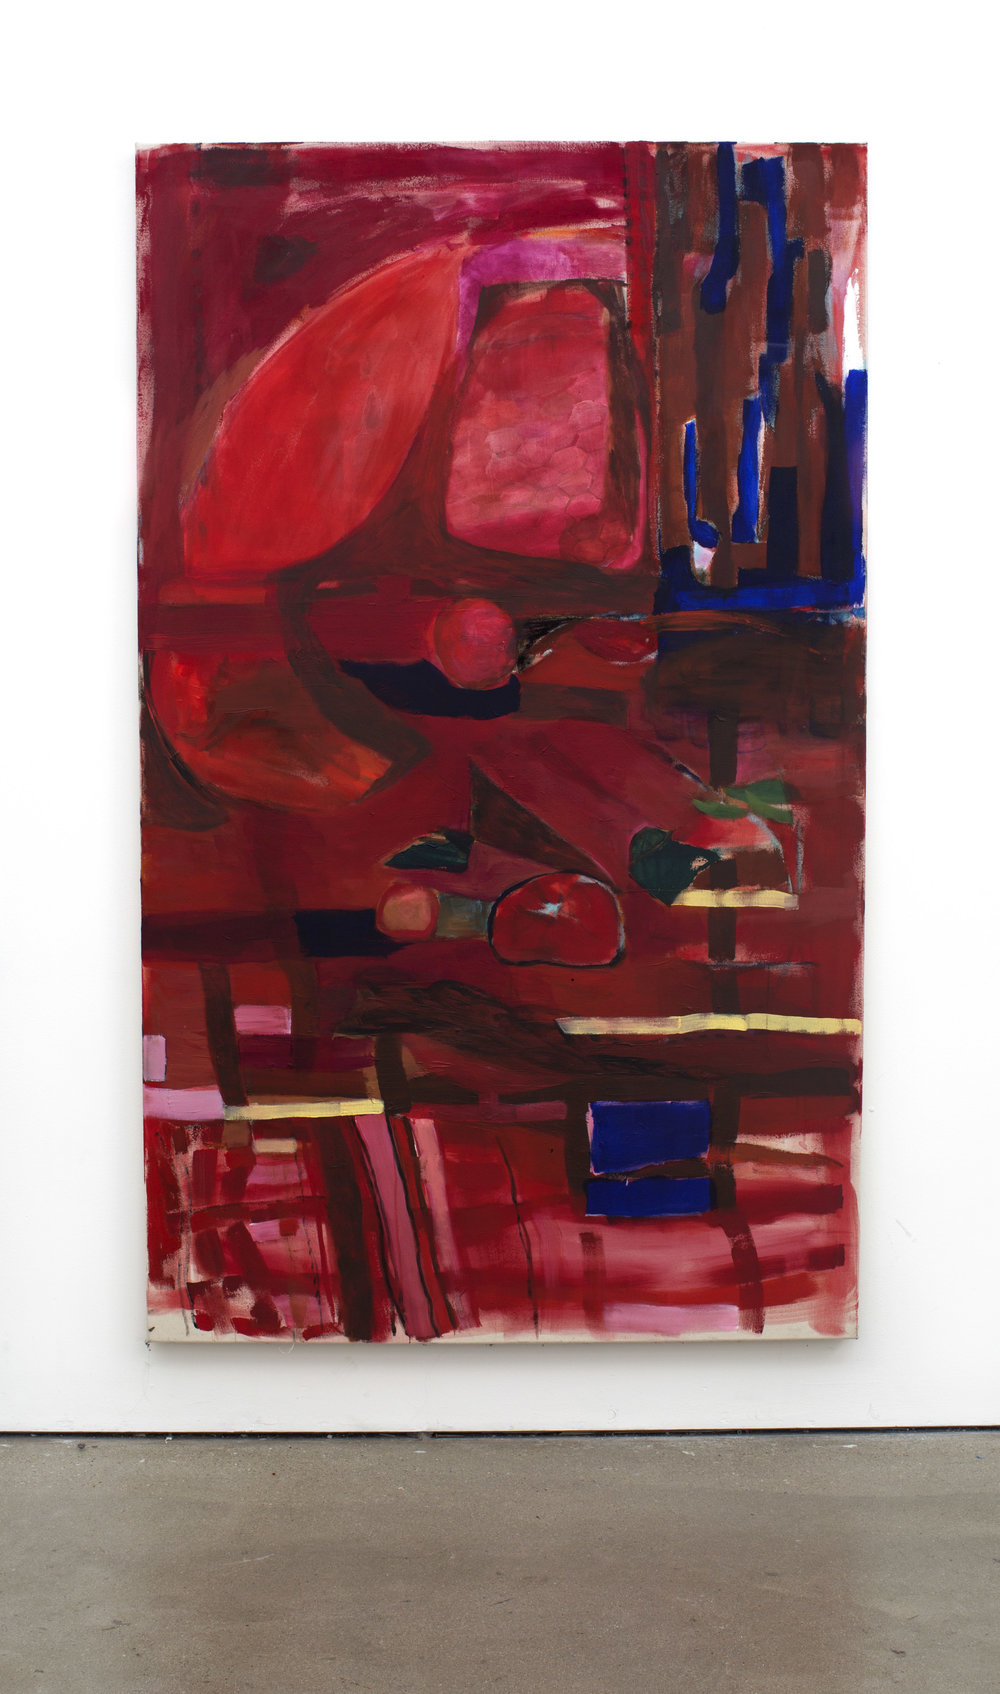 Red, acrylic on canvas, 170 x 120 cm/ 67 X 47 in, 2017.